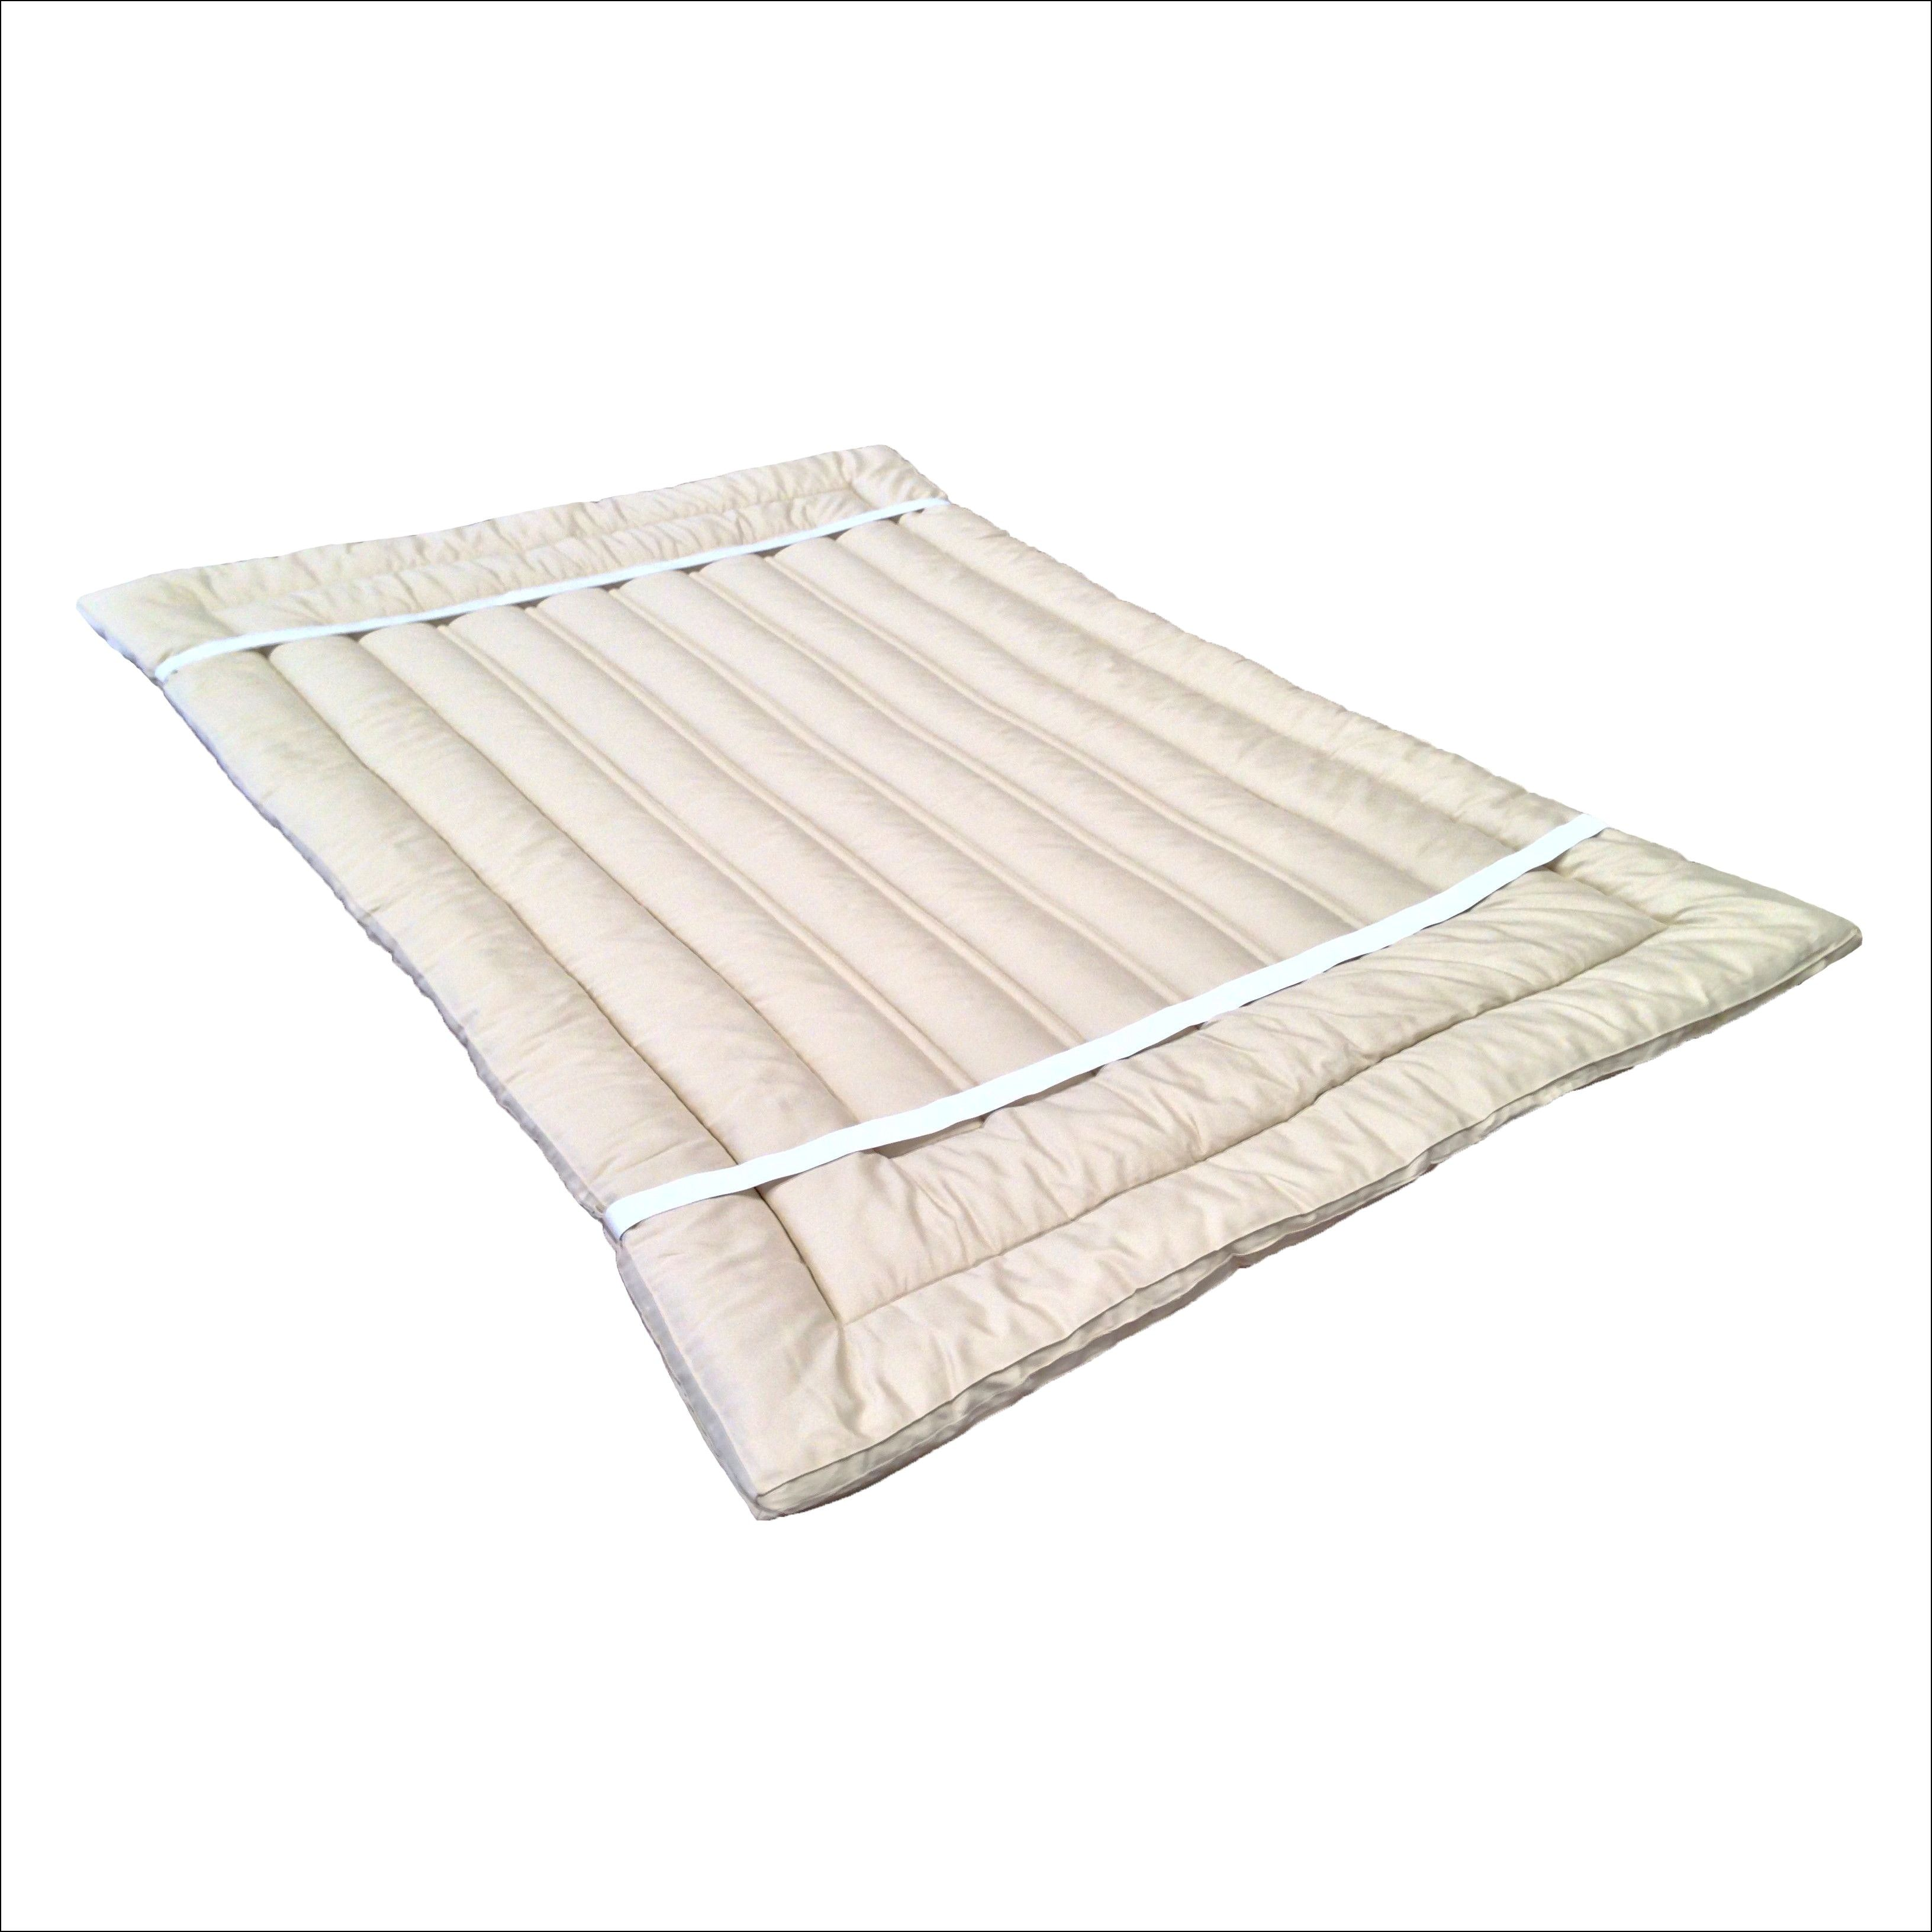 delivery img down online euroquilt c and feather deep order htm pillow mattress topper duck superb uk your toppers